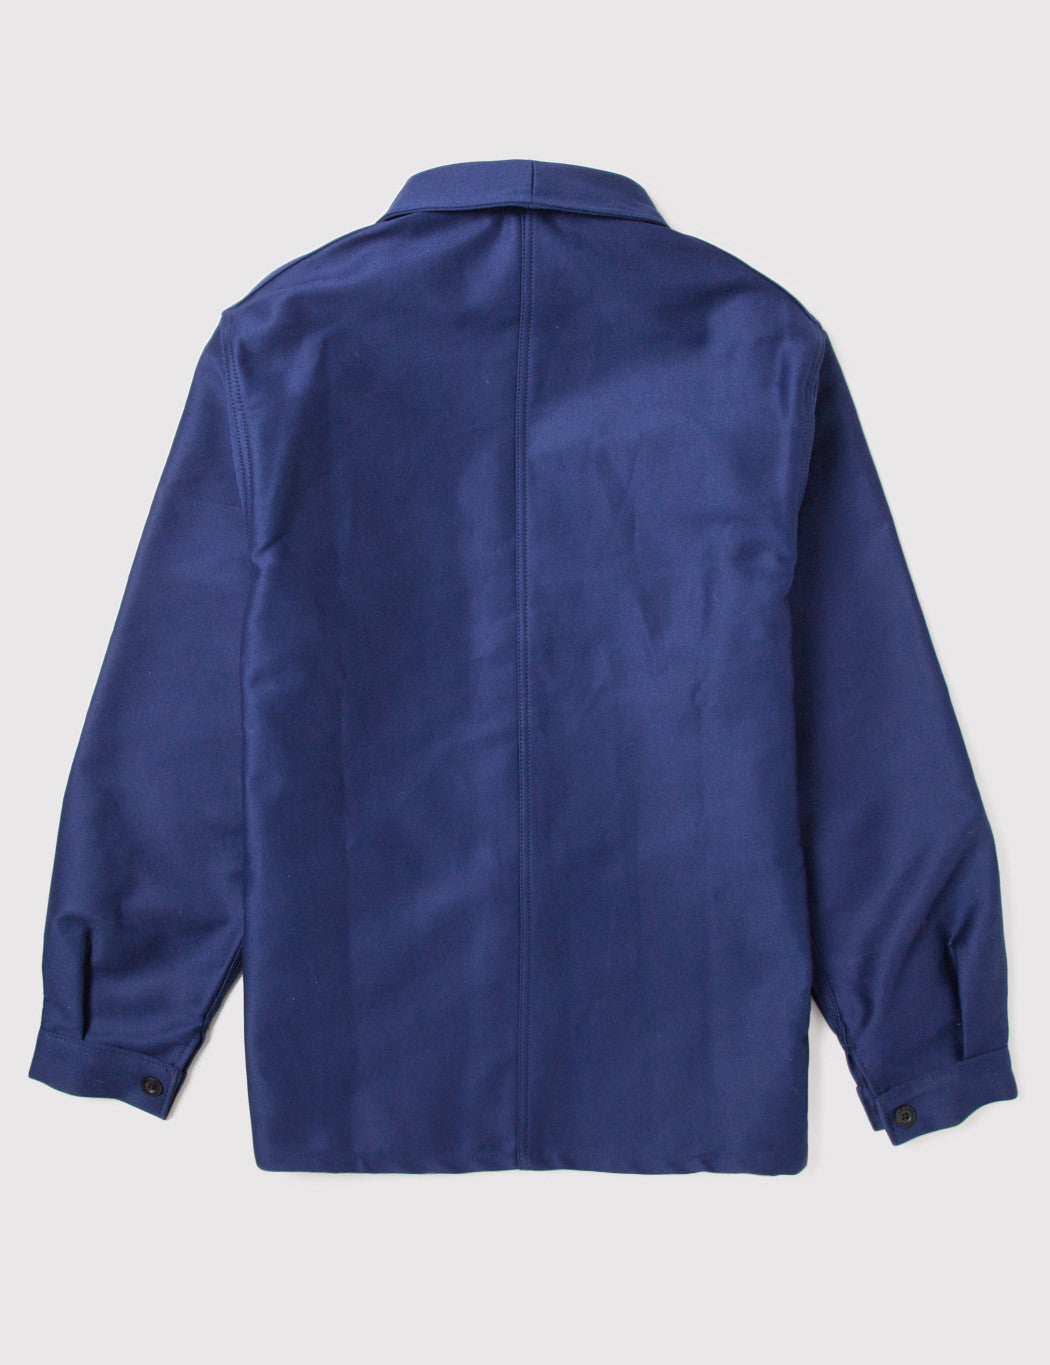 Le Laboureur Moleskin Work Jacket - Navy